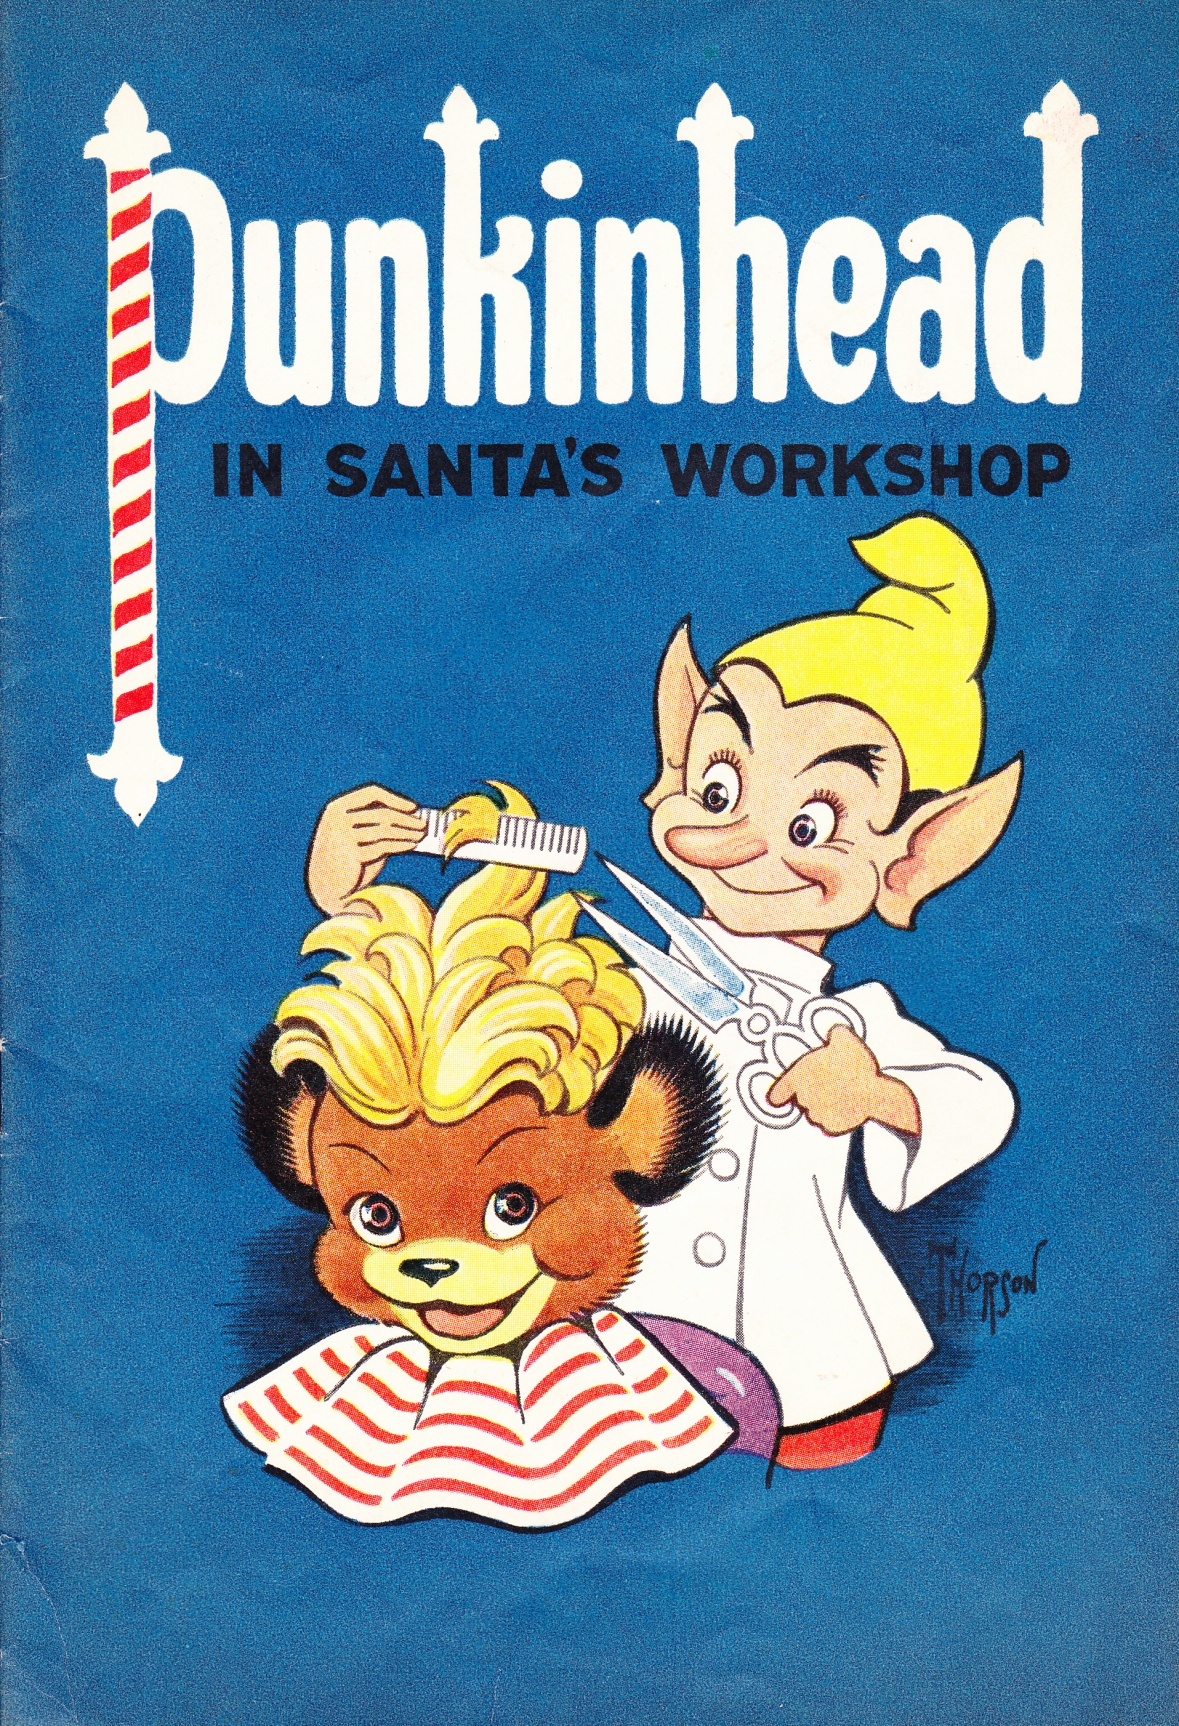 C:\Users\Robert\Documents\CARTOONING ILLUSTRATION ANIMATION\IMAGE CARTOON\IMAGE CARTOON P\PUNKINHEAD In Santa's Workshop, 1.jpg